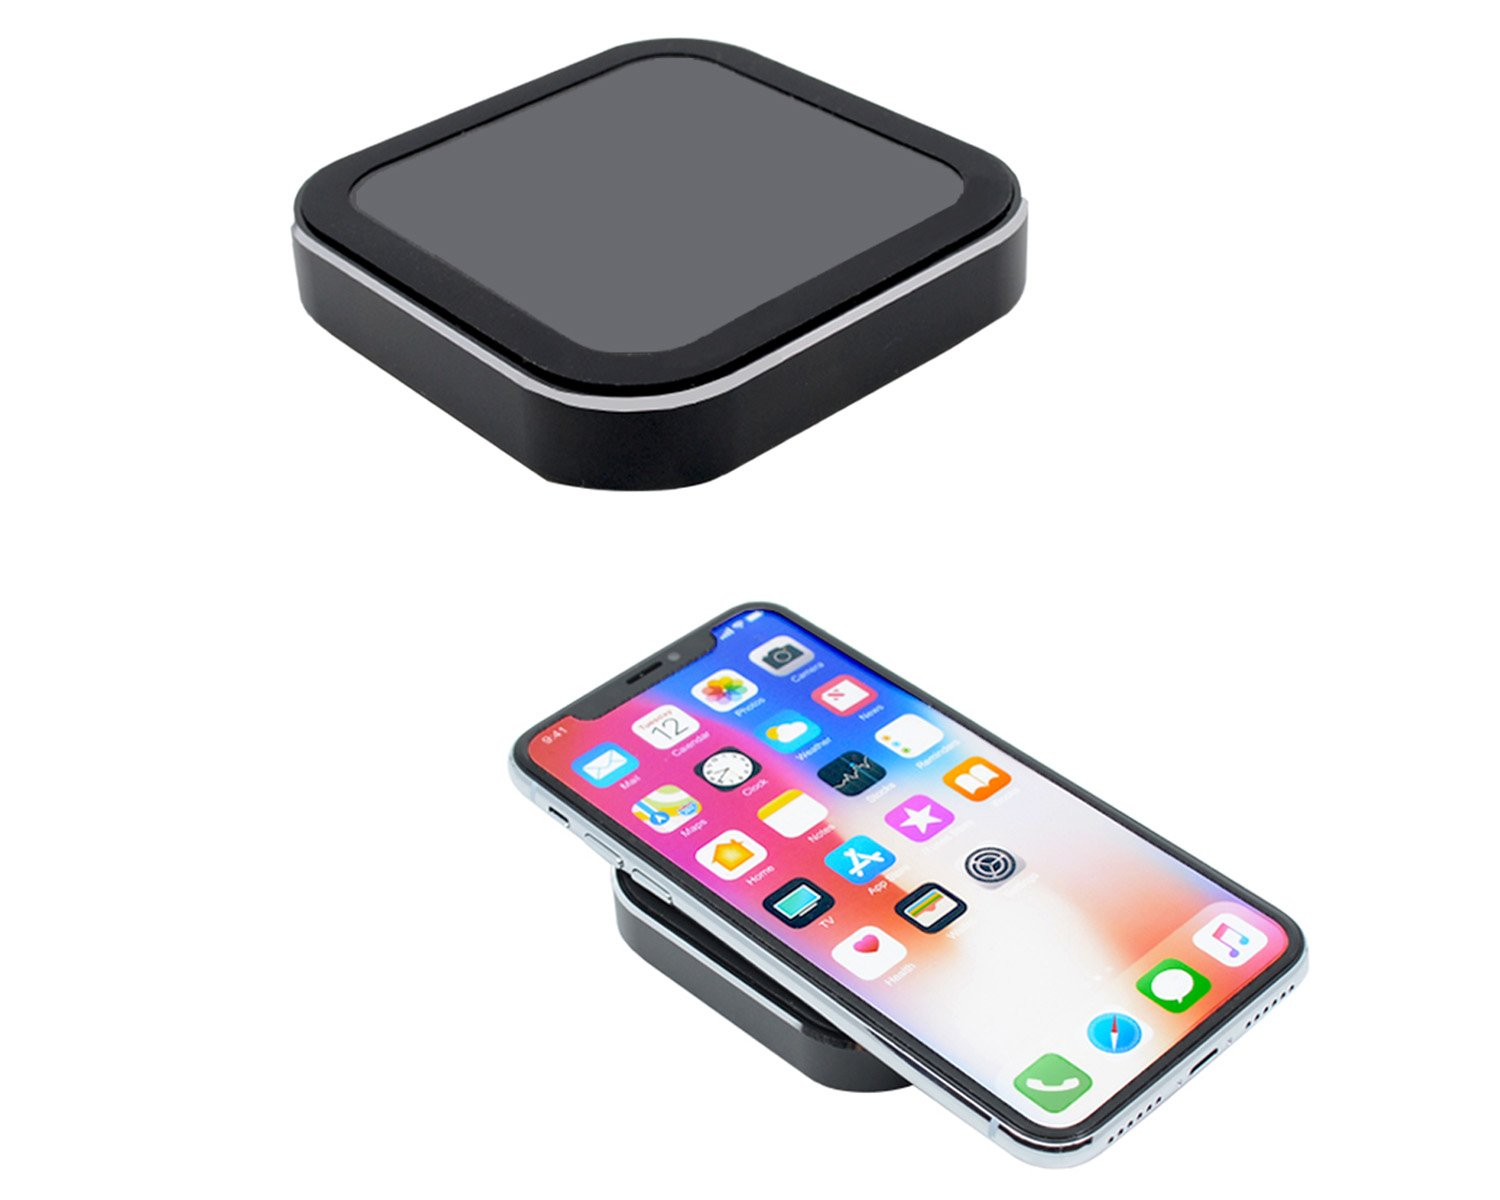 Audiology Connect Wireless Charger, Qi Wireless Charger, Qi Wireless Fast Charging Pad Stand with 5-10W Power for iPhone X, iPhone 8/8 Plus, Samsung S9/S9+/S8/S8+/S7/Note 5/8 and More